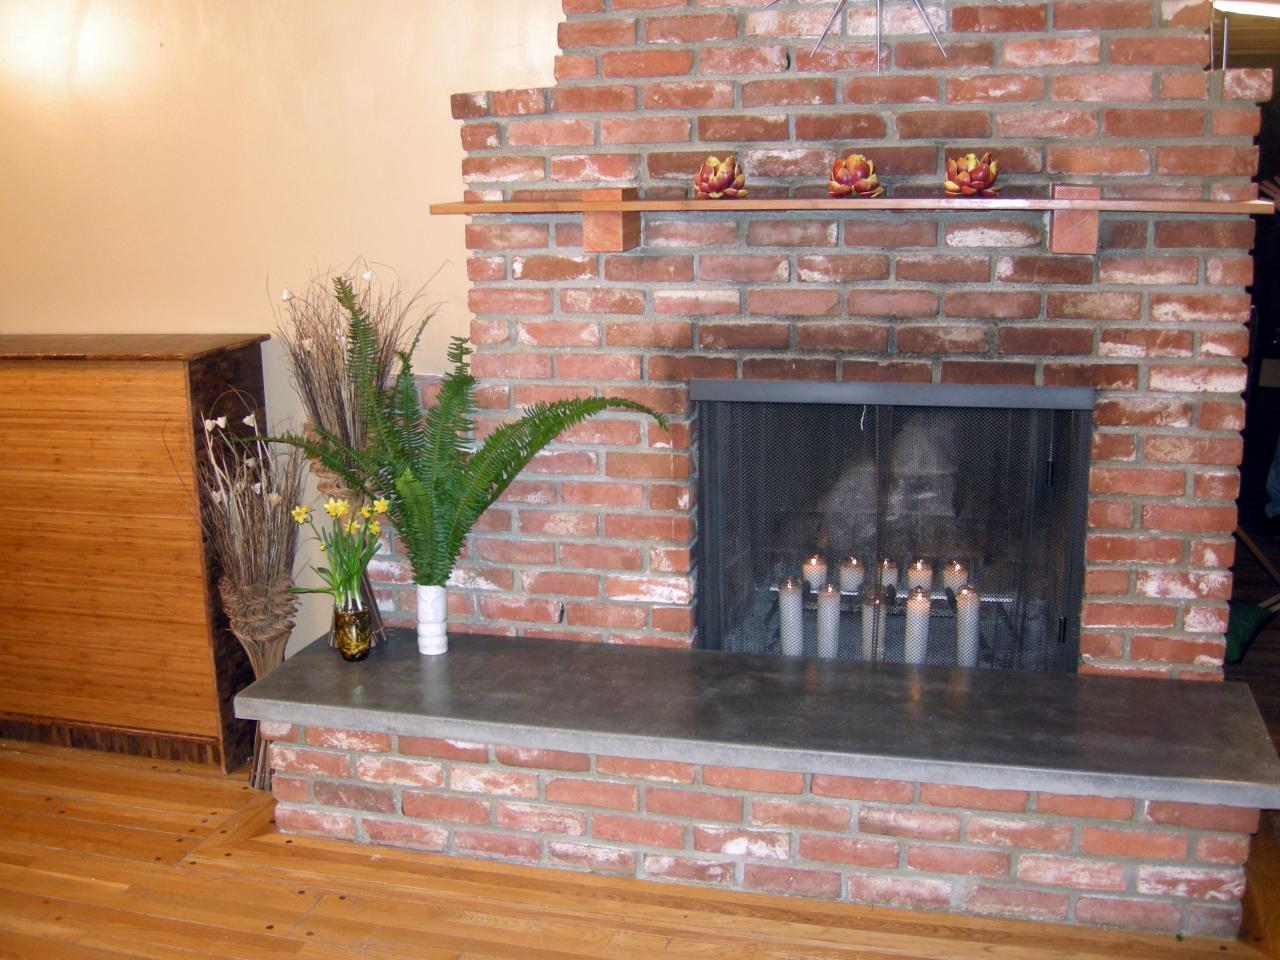 Facts to Note in Fireplace Hearth Stone : Fireplace Hearth Stone Tiles. Fireplace hearth stone tiles. fireplace design